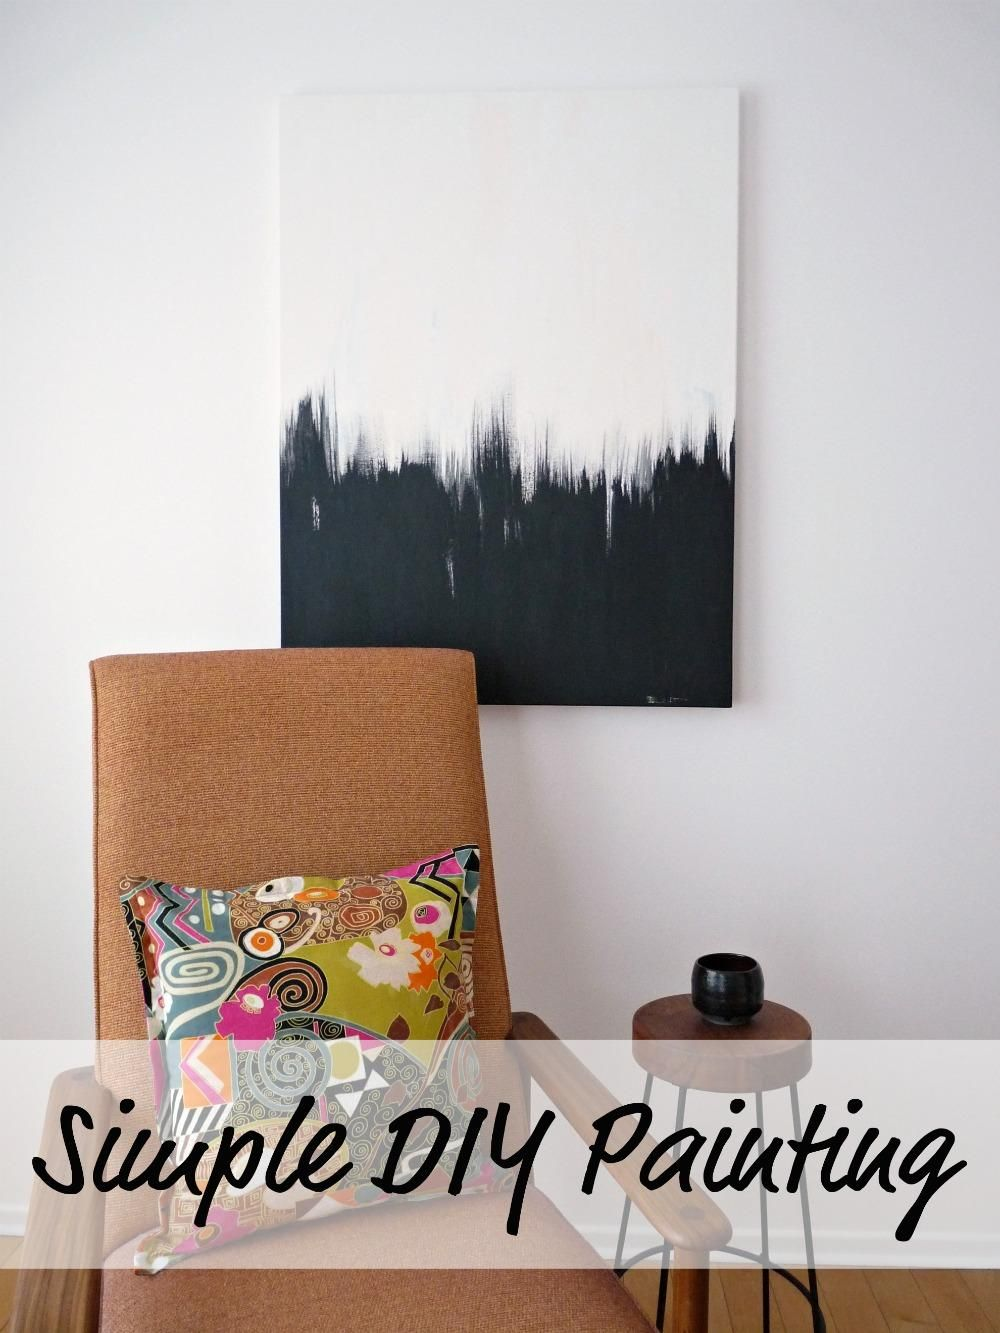 Diy wall art simple but striking diy black and white wall art diy wall art simple but striking diy black and white wall art painting solutioingenieria Image collections